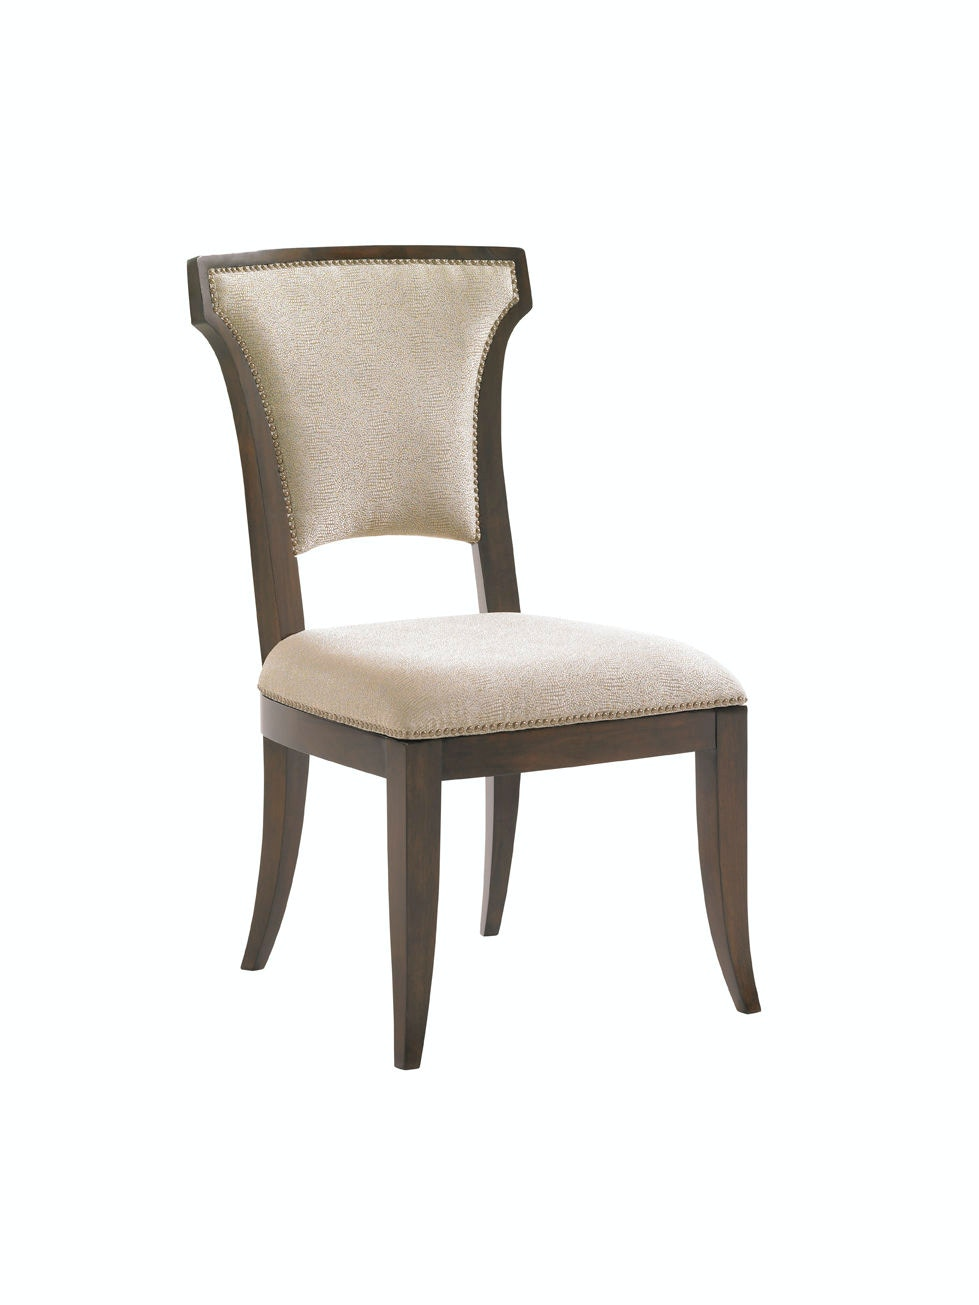 Nice Lexington Seneca Upholstered Side Chair LX01070688201 From Walter E. Smithe  Furniture + Design